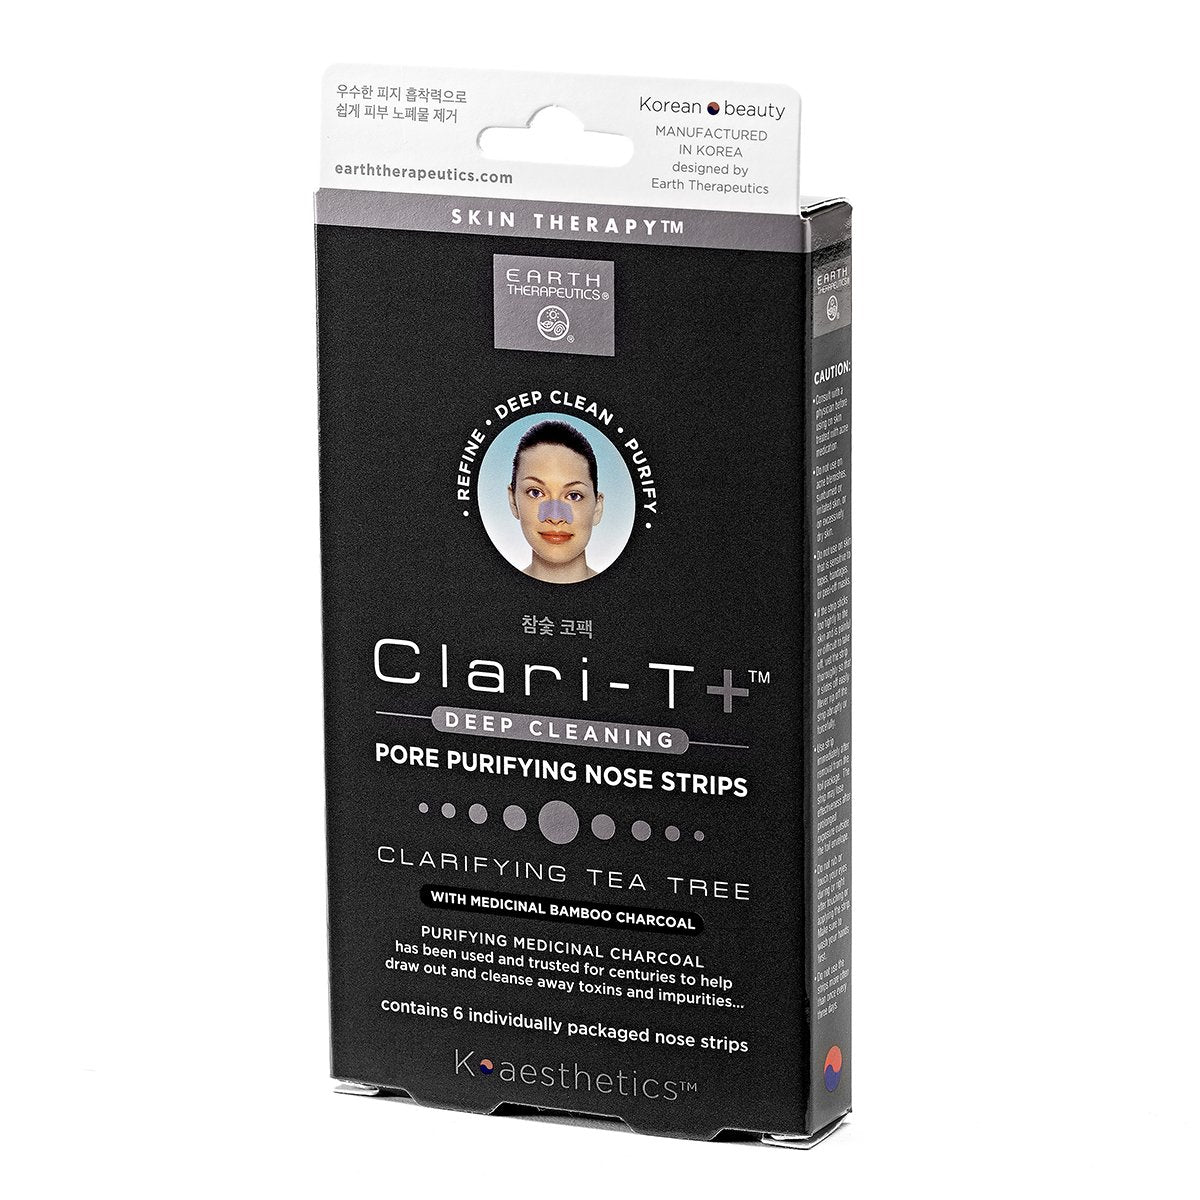 Clari-T Charcoal Pore Purifying Nose Strips